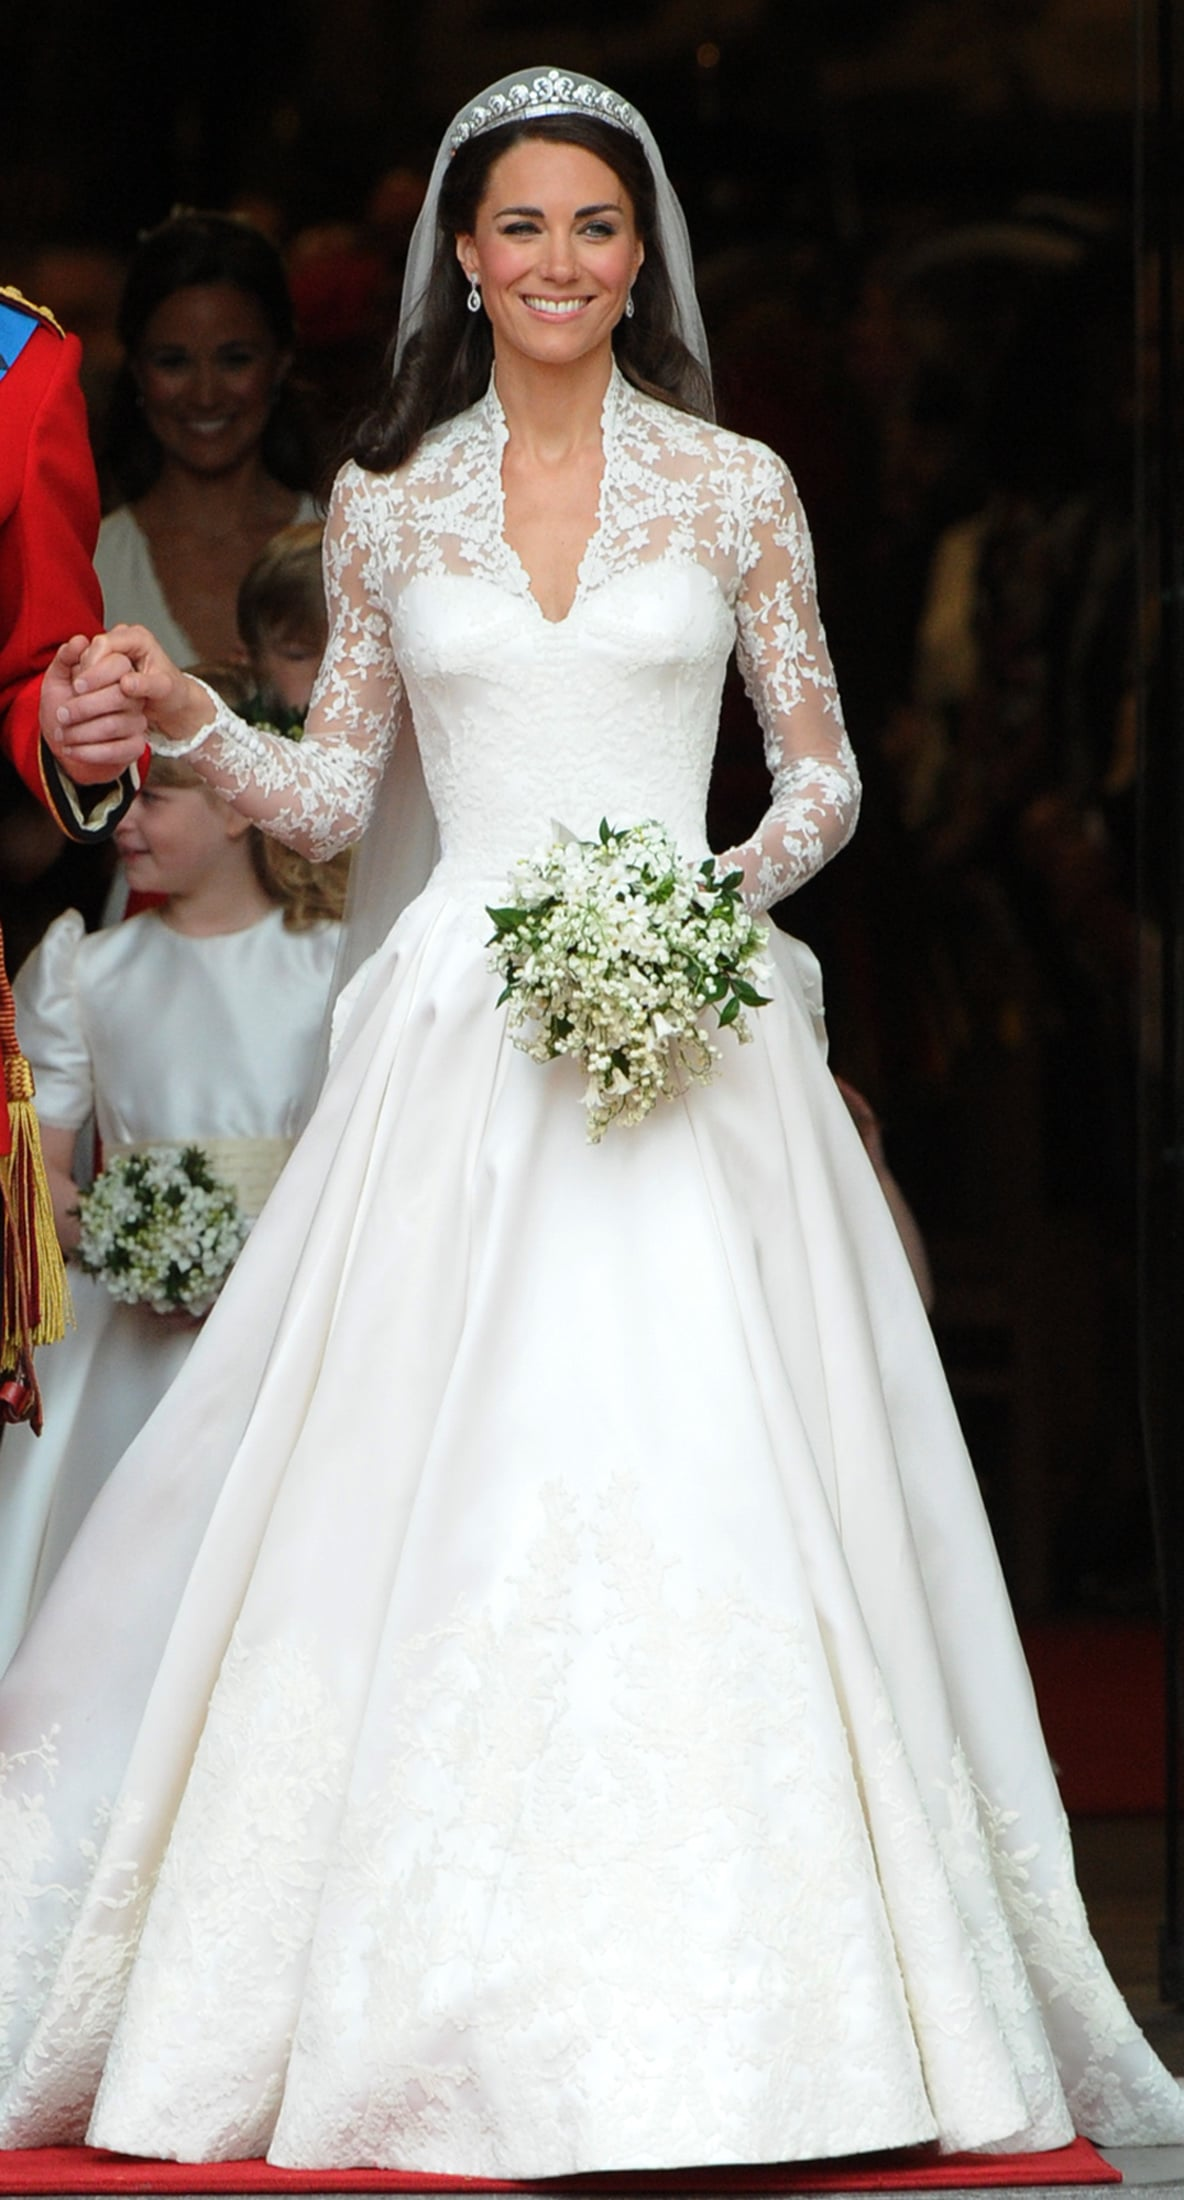 Both Dresses Featured Elegant Lace Sleeves A Sweetheart Neckline And A Long Train It S Hard To Miss Who Kate Middleton S Stylist Channeled On Her Wedding Day Popsugar Fashion Photo 7,Destination Wedding Flower Girl Dress